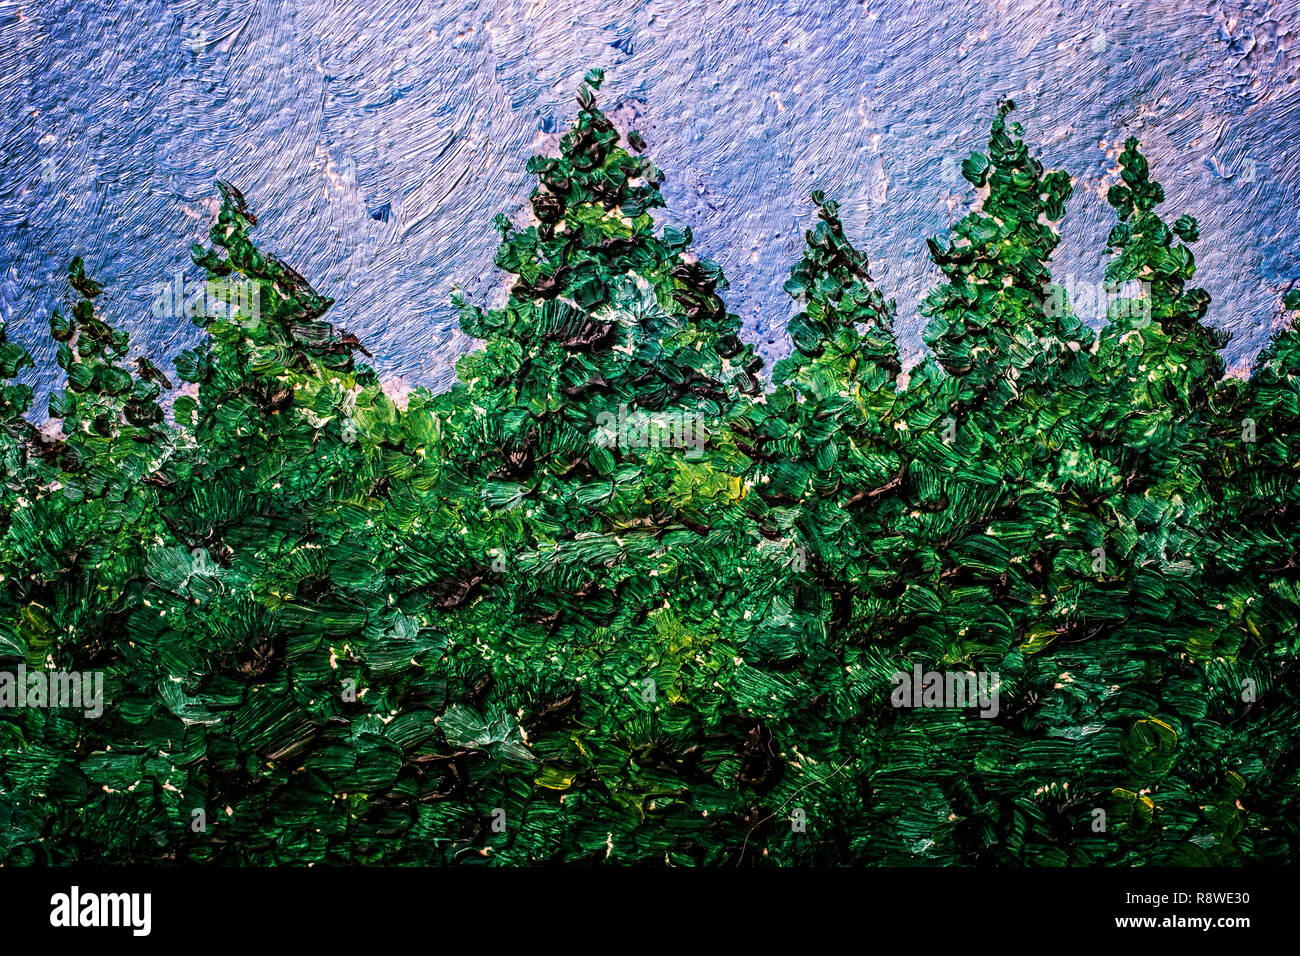 Oil painting detail of a row of conifers such as spruce. - Stock Image